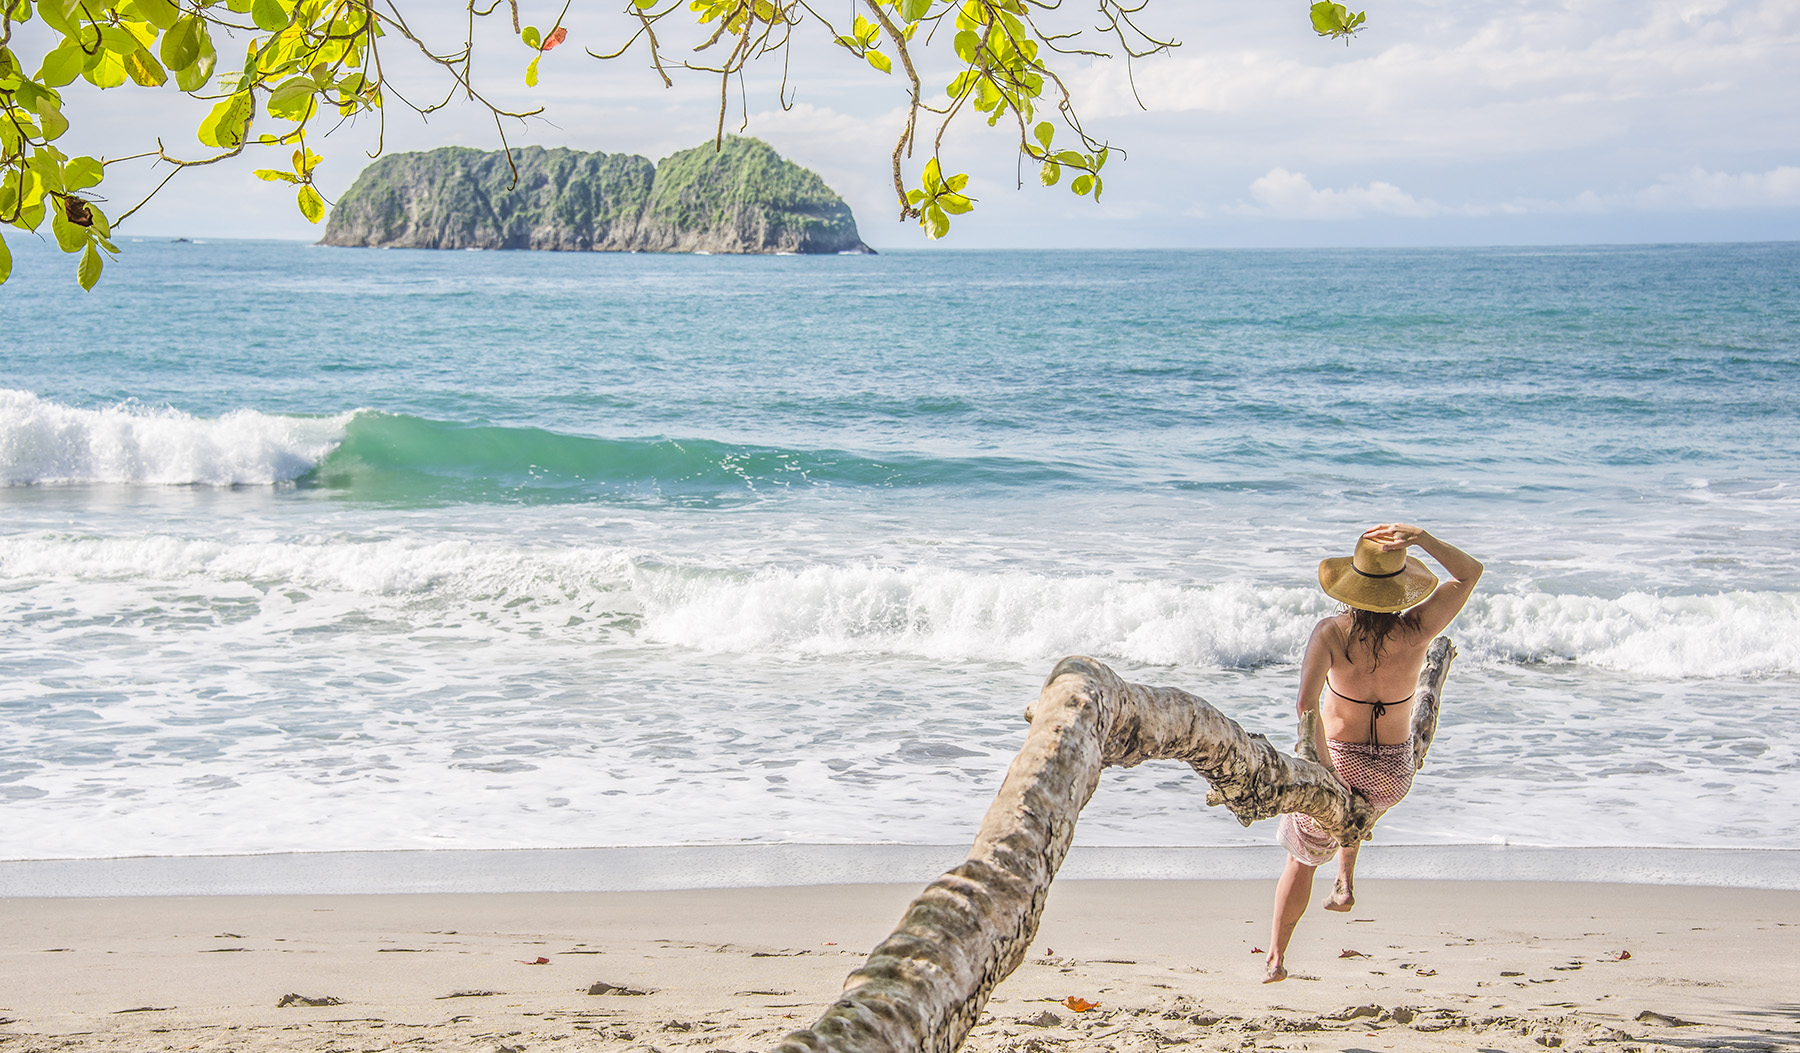 Costa Rica beach and woman with hat